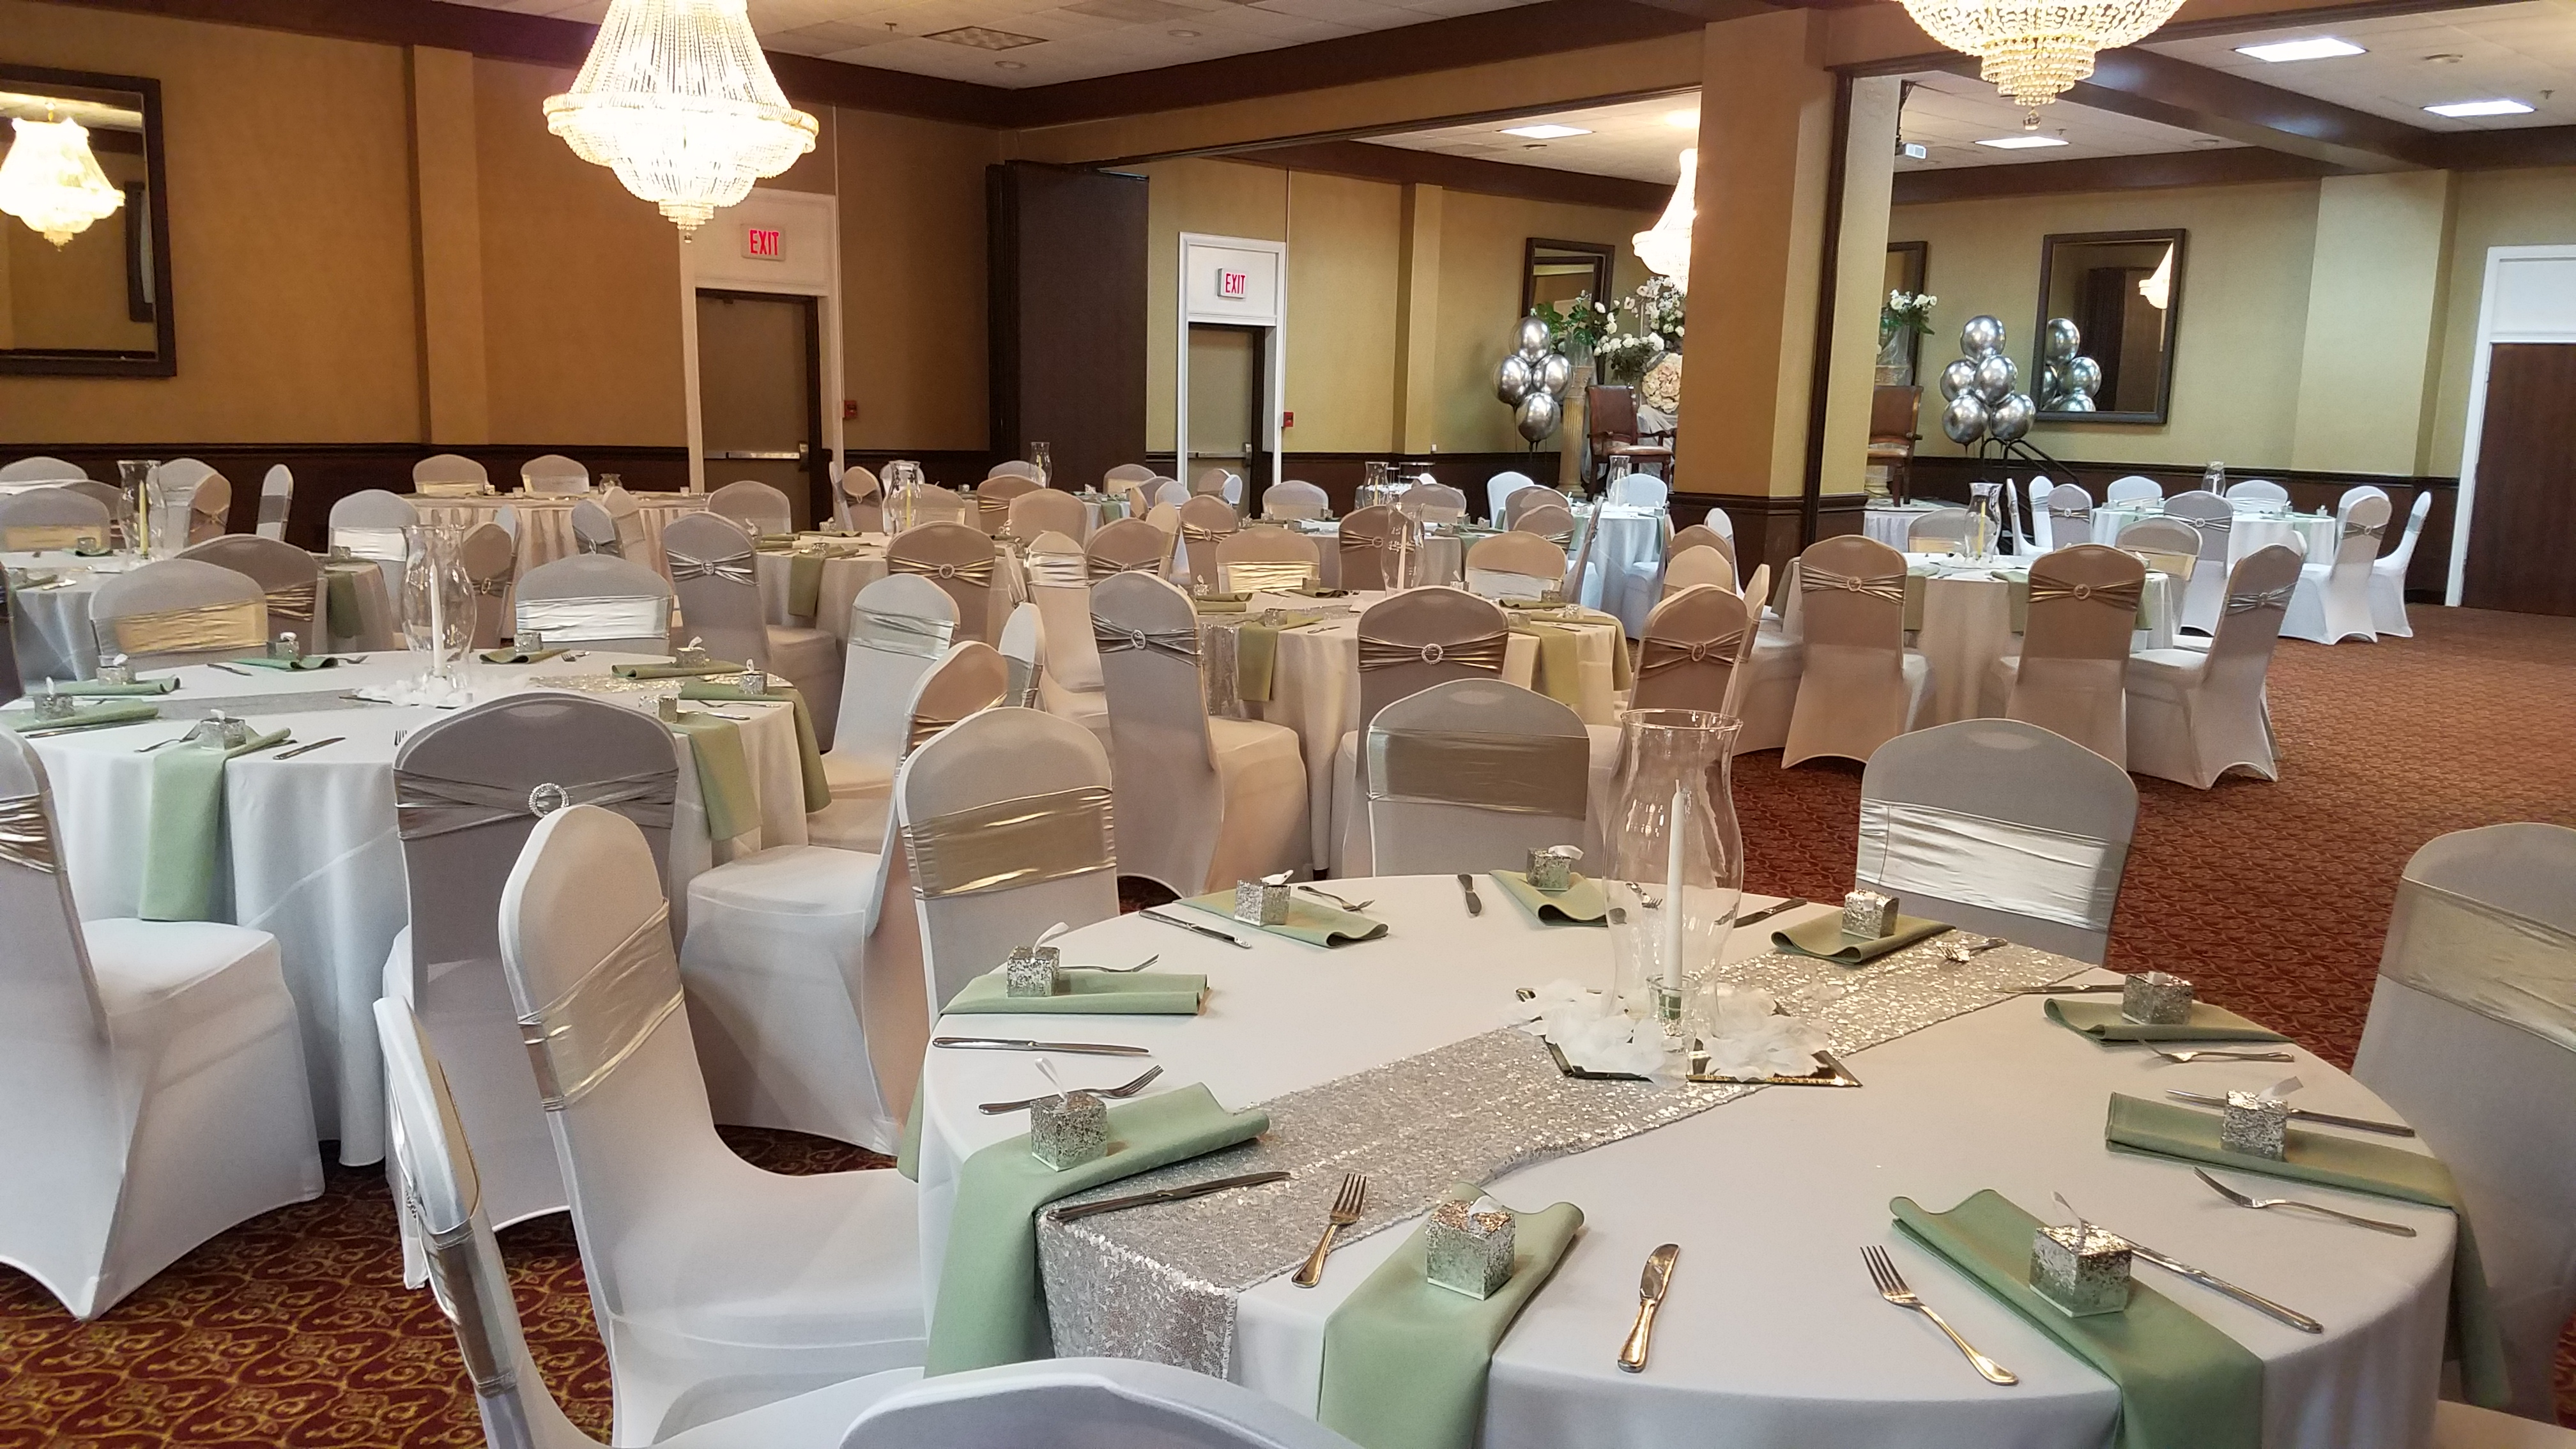 How To Properly Set Up Banquet Tables Our Everyday Life & Banquet Table Setup - Best Table 2018